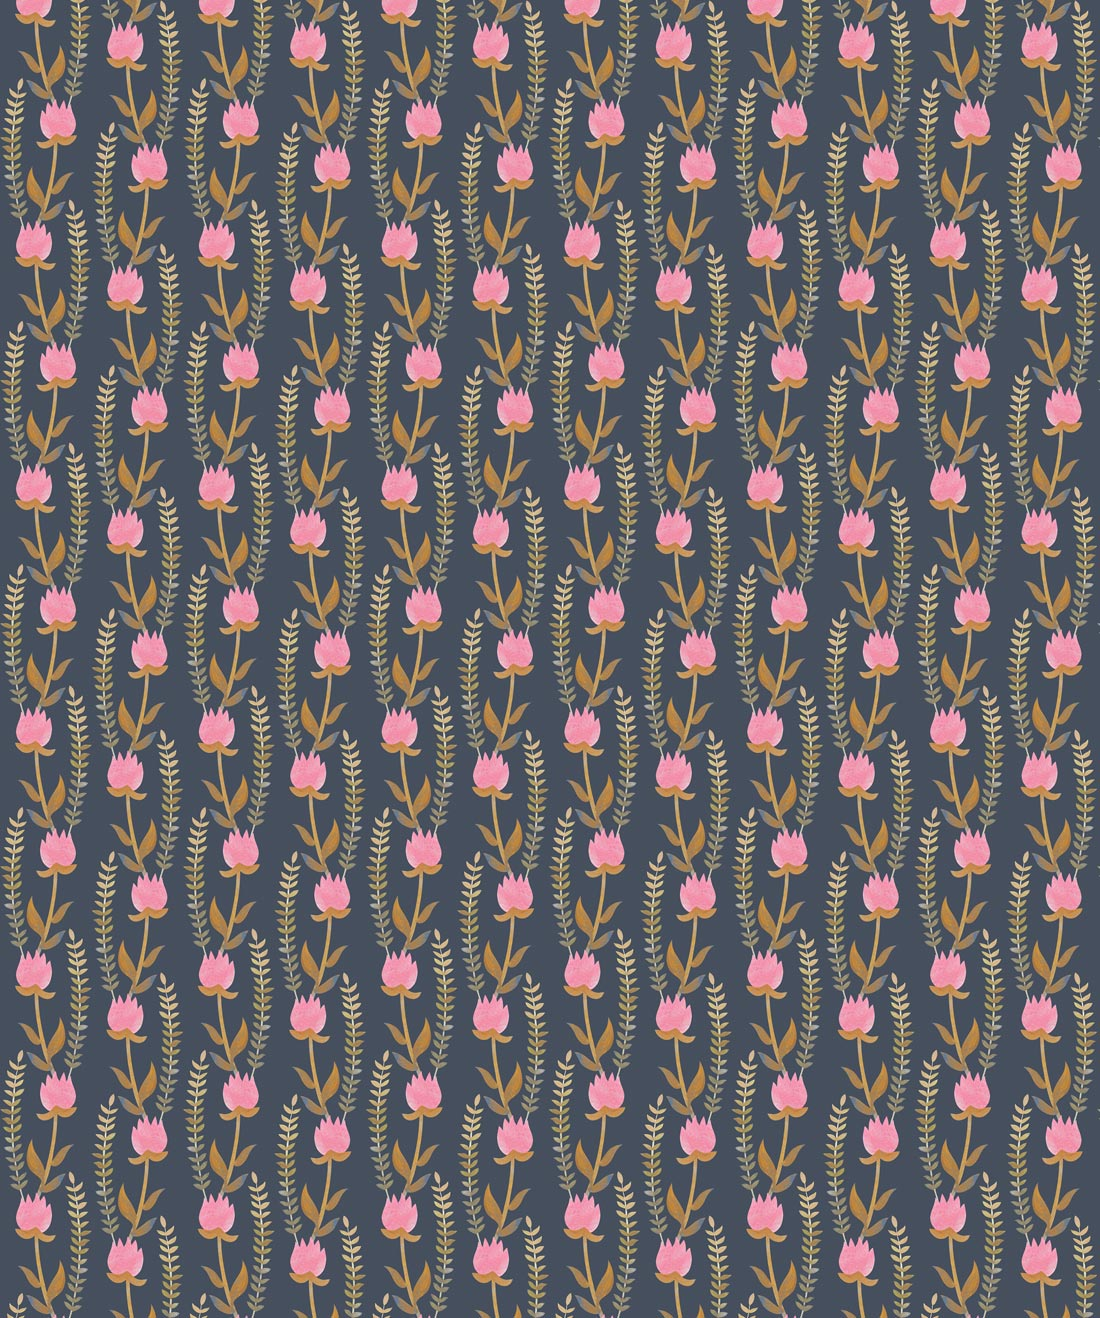 Clover Fields Wallpaper